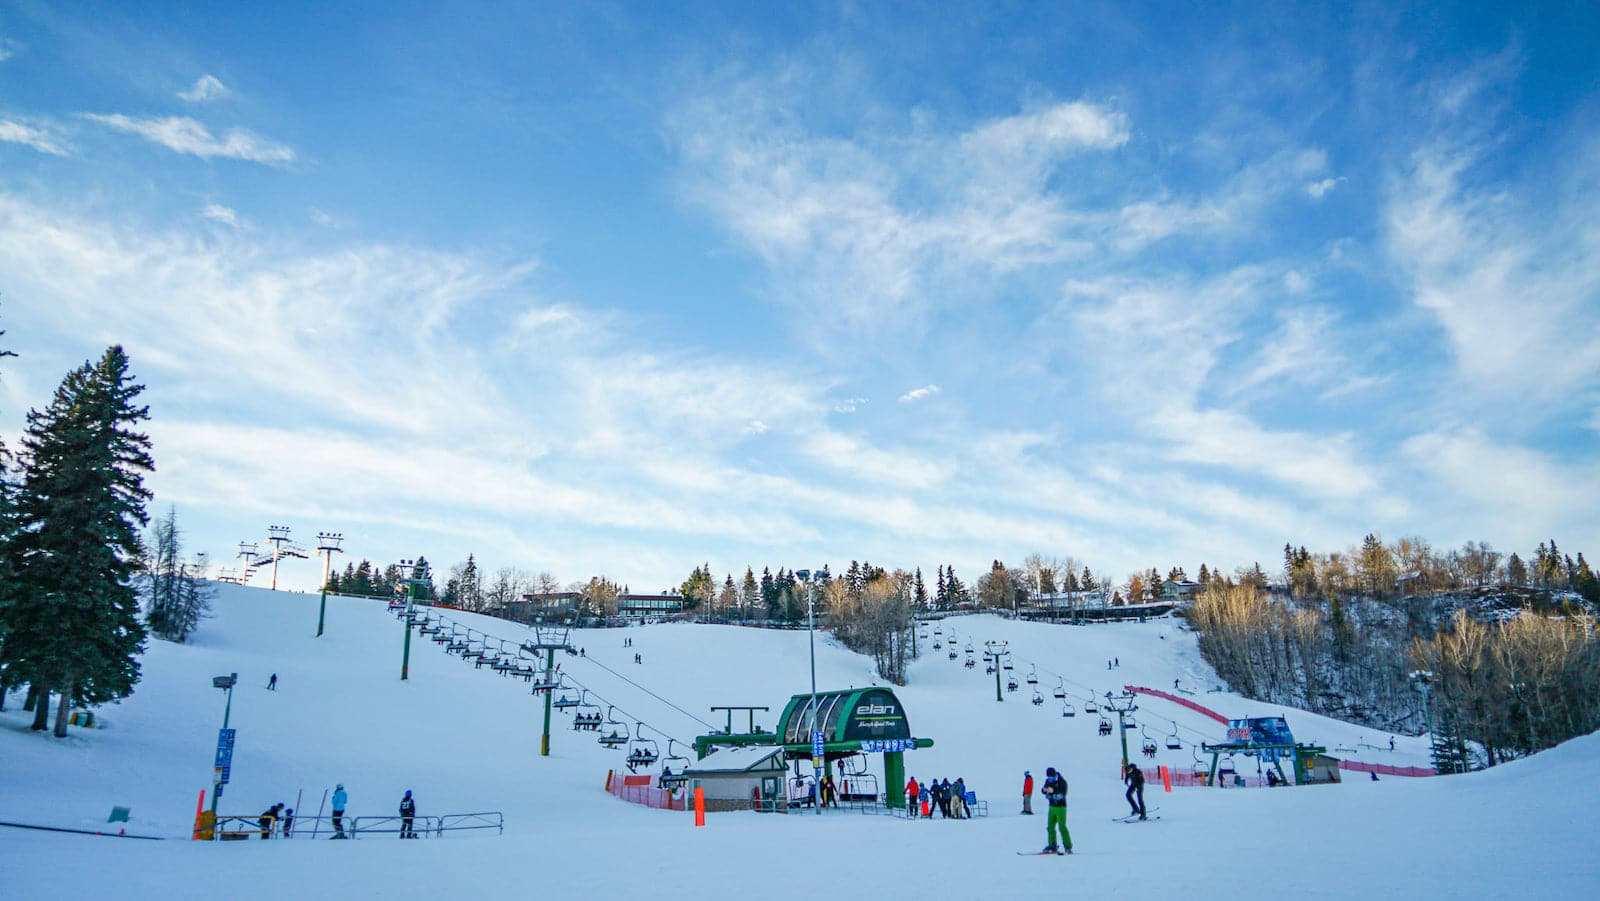 Image of the slopes form the base of Snow Valley Ski Club in Edmonton, Canada